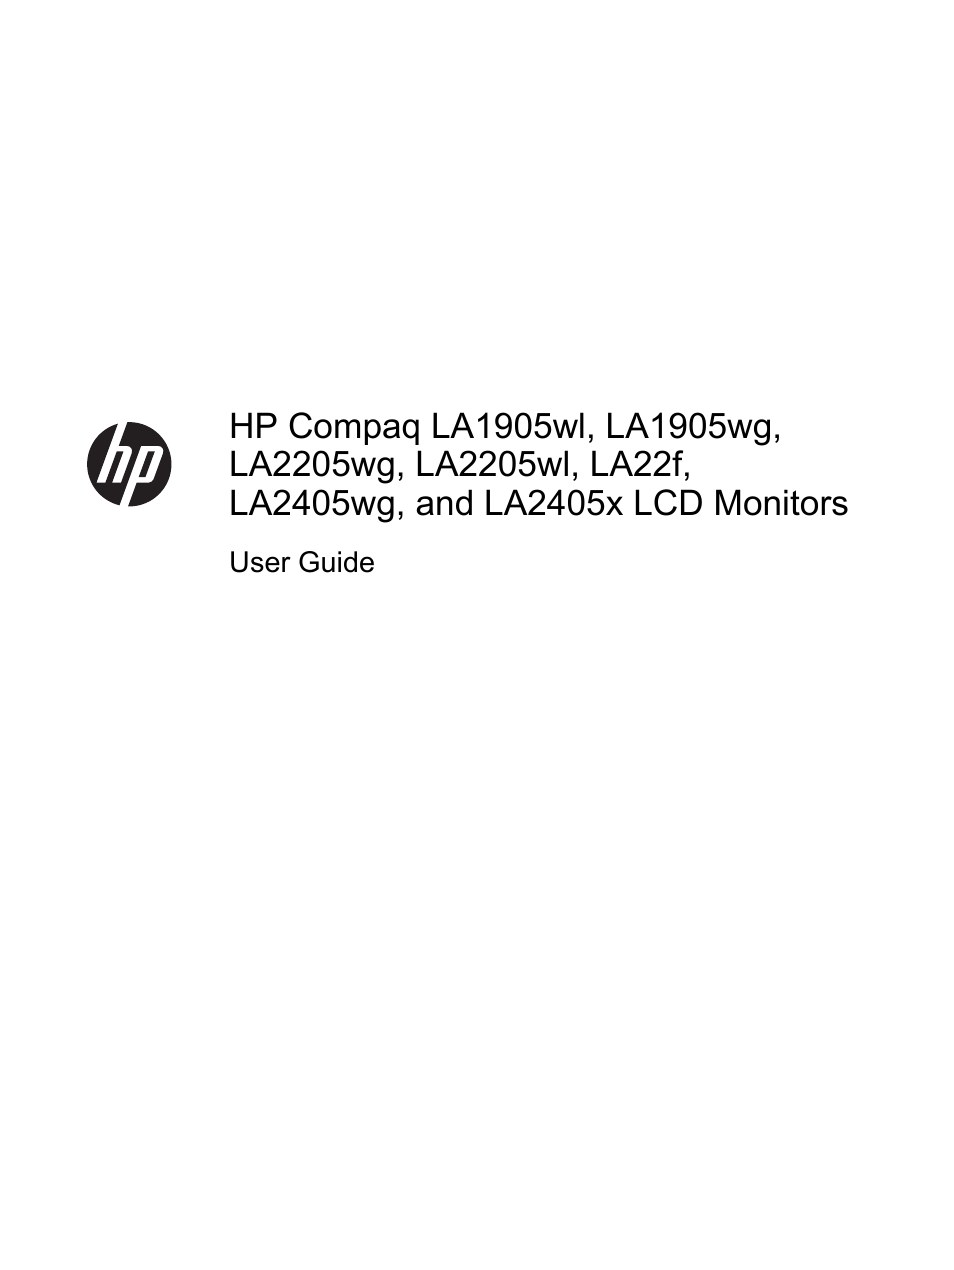 HP Compaq LA2405x 24-inch LED Backlit LCD Monitor User Manual | 28 pages |  Also for: Compaq LA22f 22-inch LED Backlit LCD Monitor, Compaq LA2405wg 24-inch  Widescreen LCD Monitor, Compaq LA1905wg 19-inch